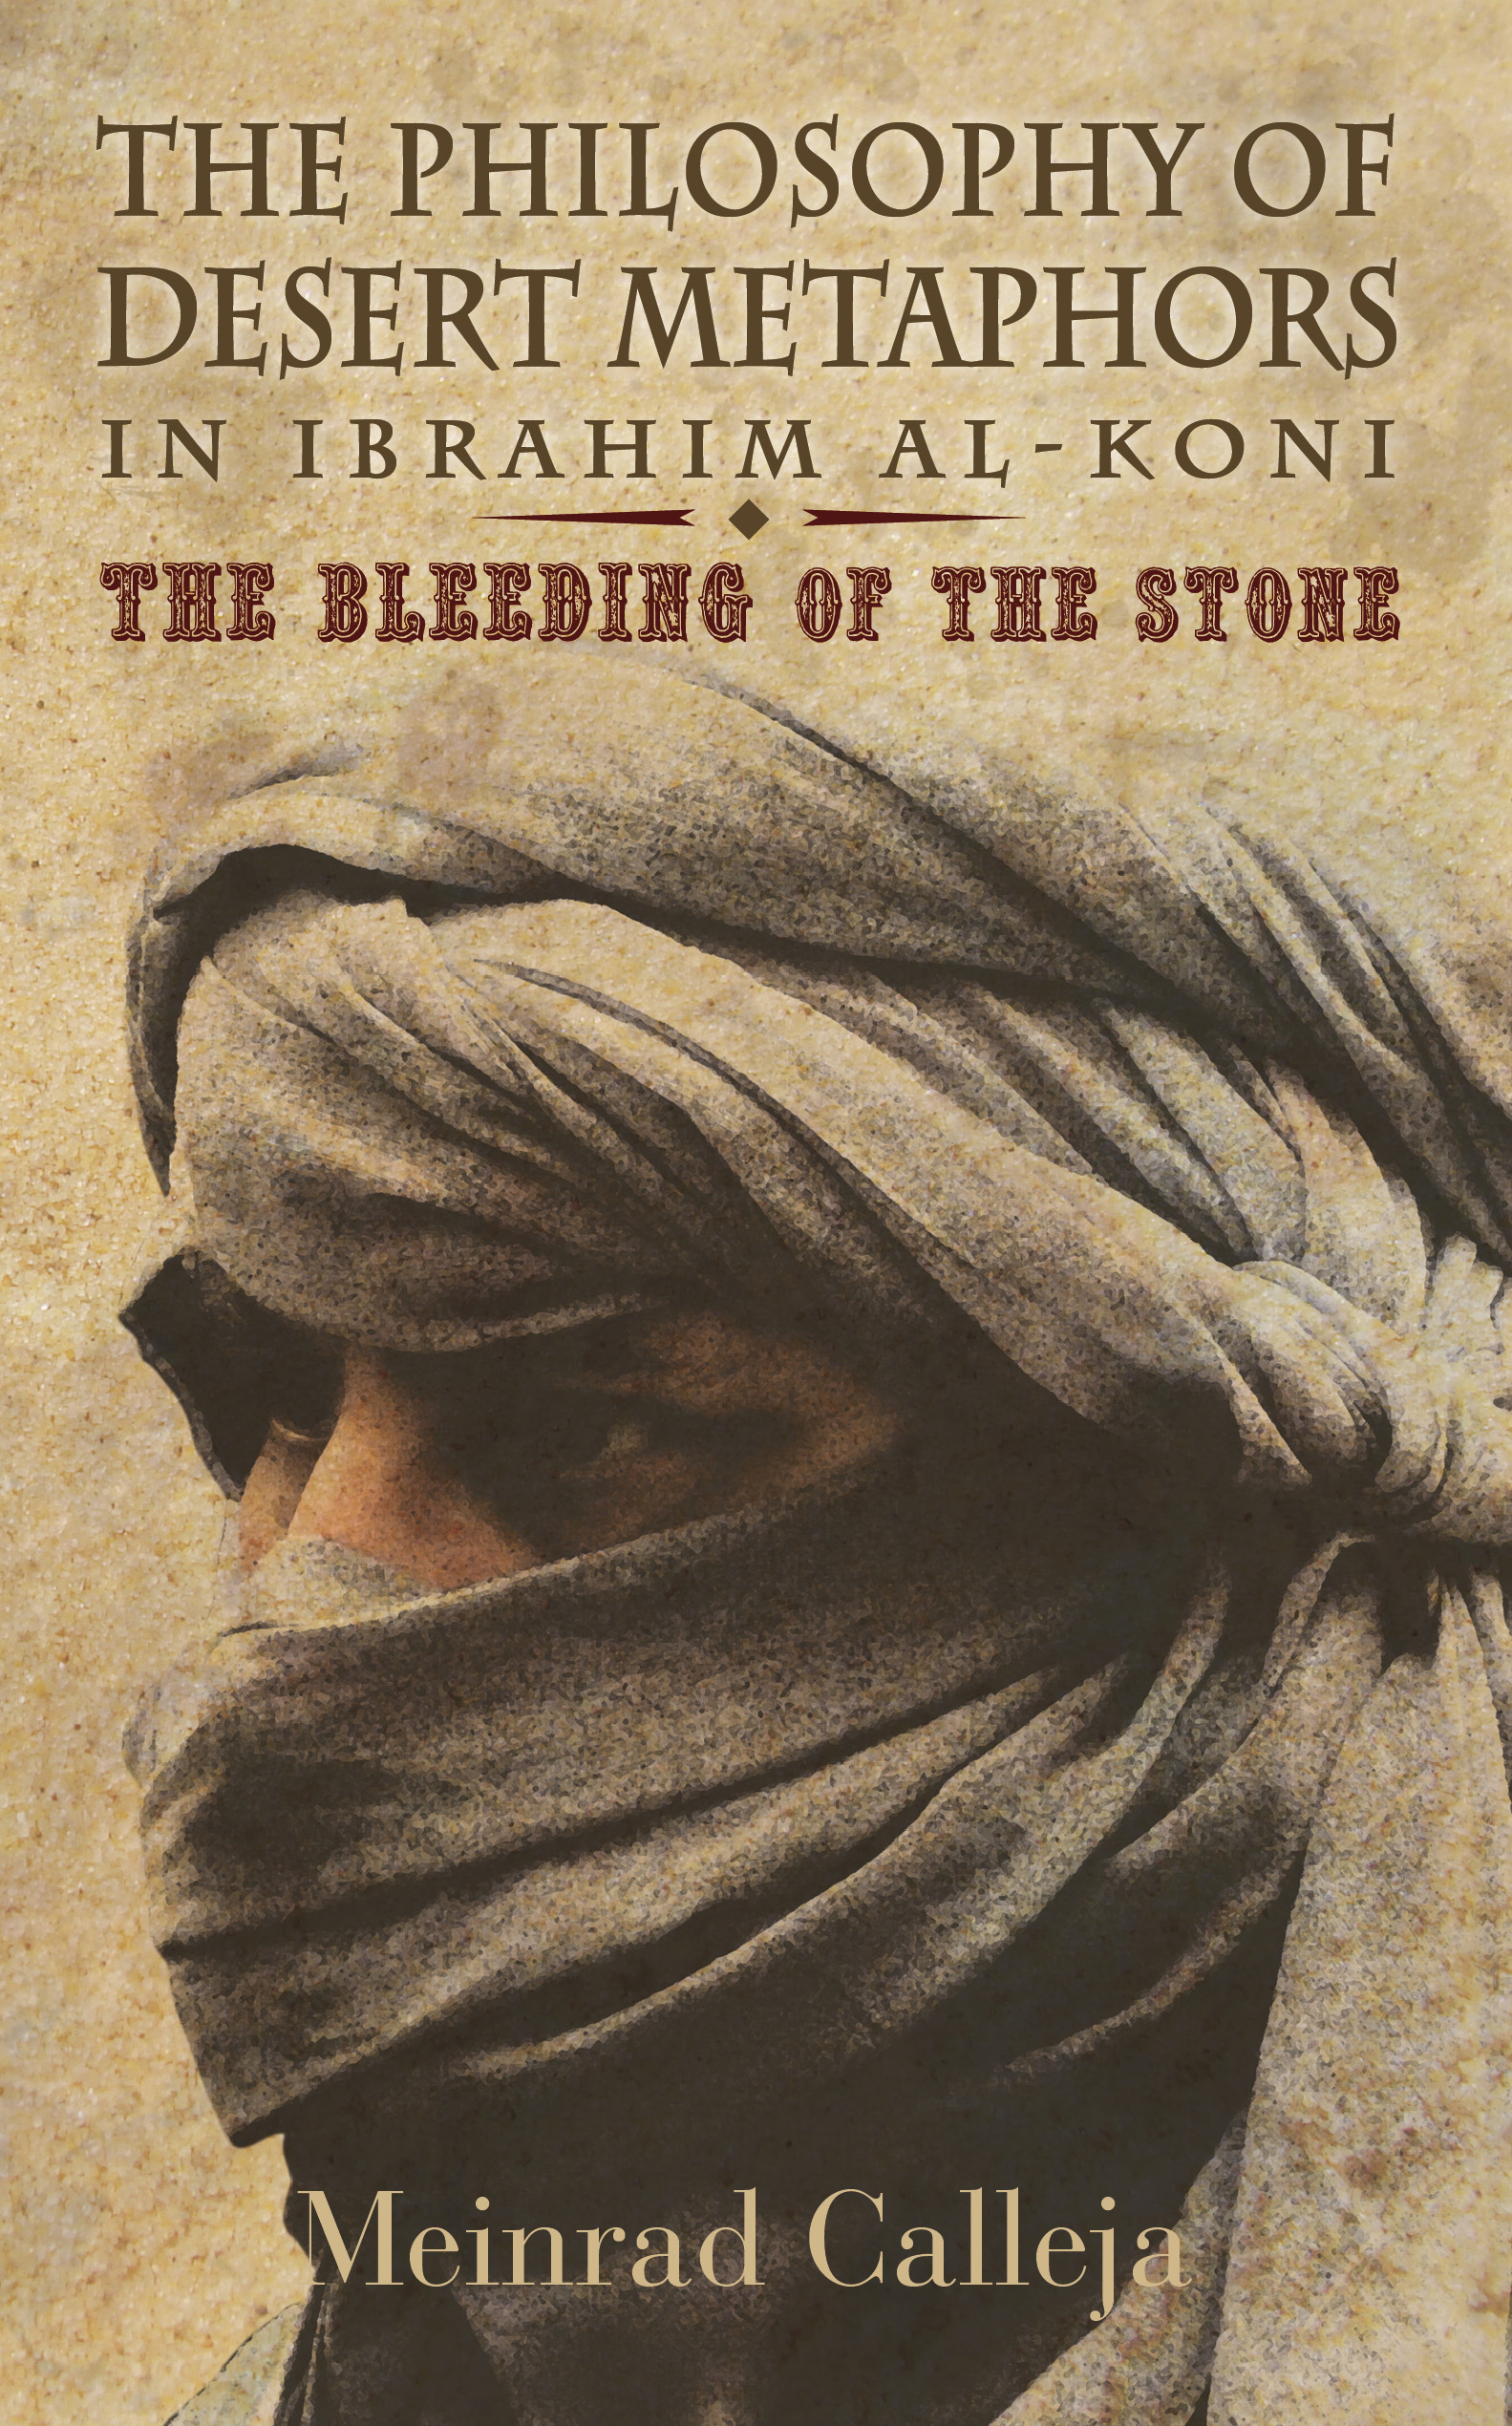 The Philosophy of Desert Metaphors in Ibrahim al-Koni: The Bleeding of the Stone